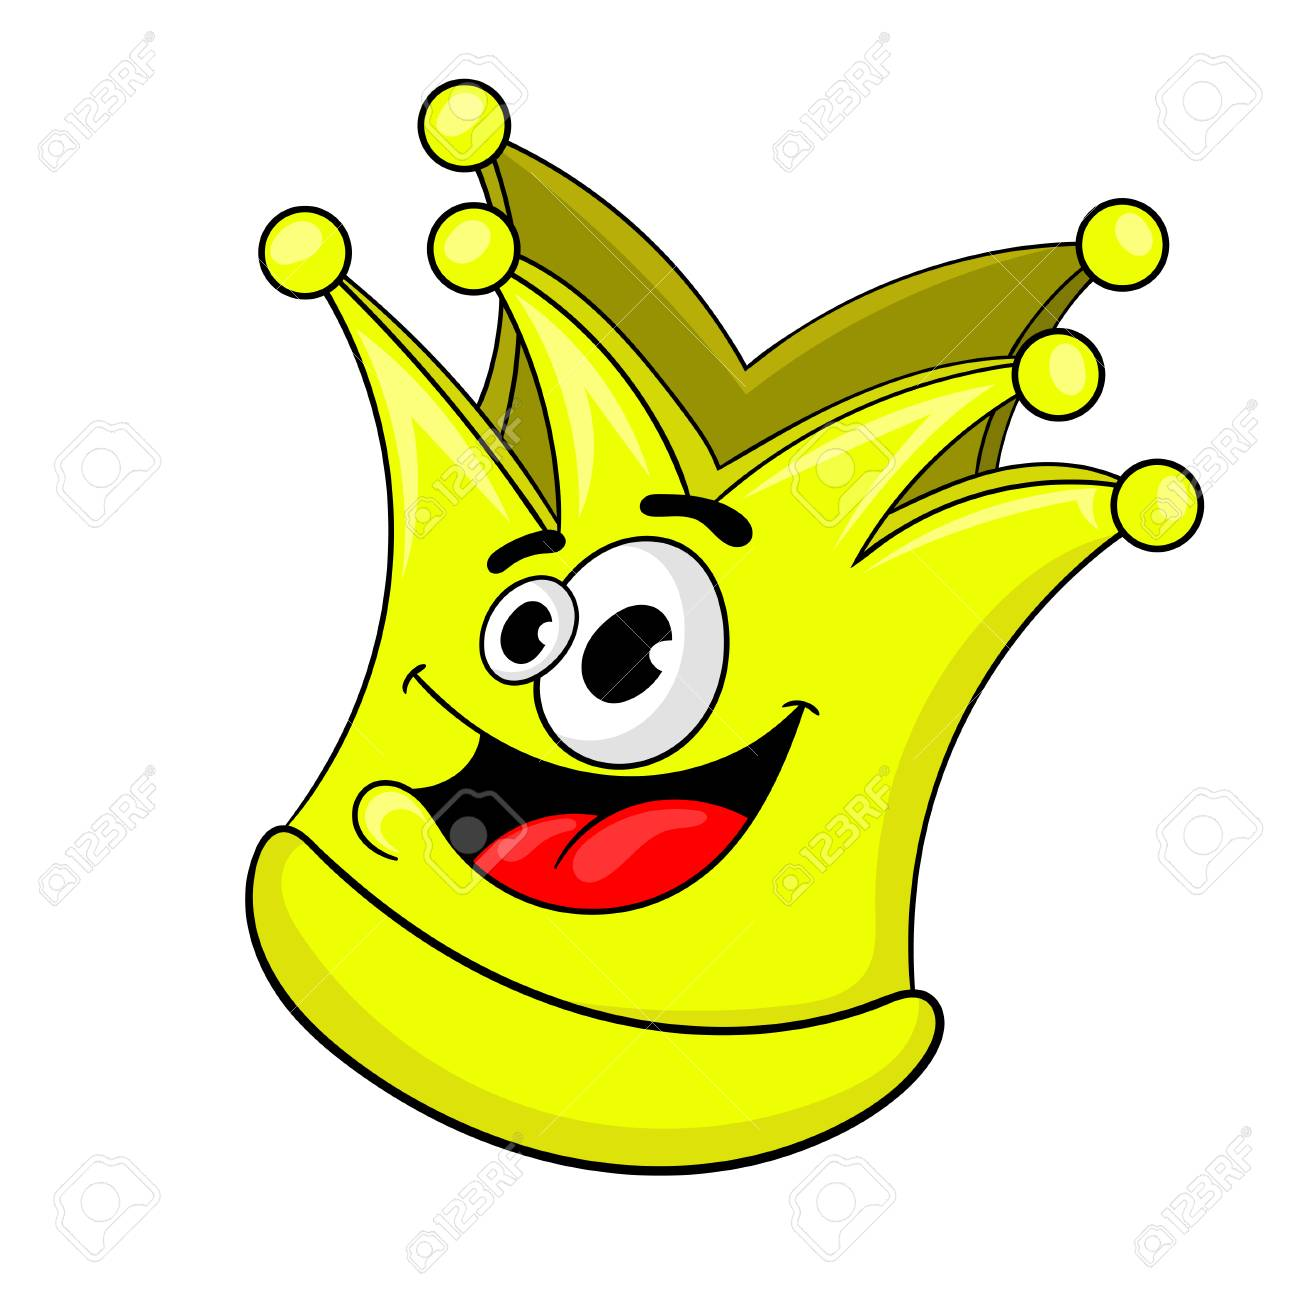 Golden Crown Cartoon / Pngtree has millions of free png, vectors and psd graphic.